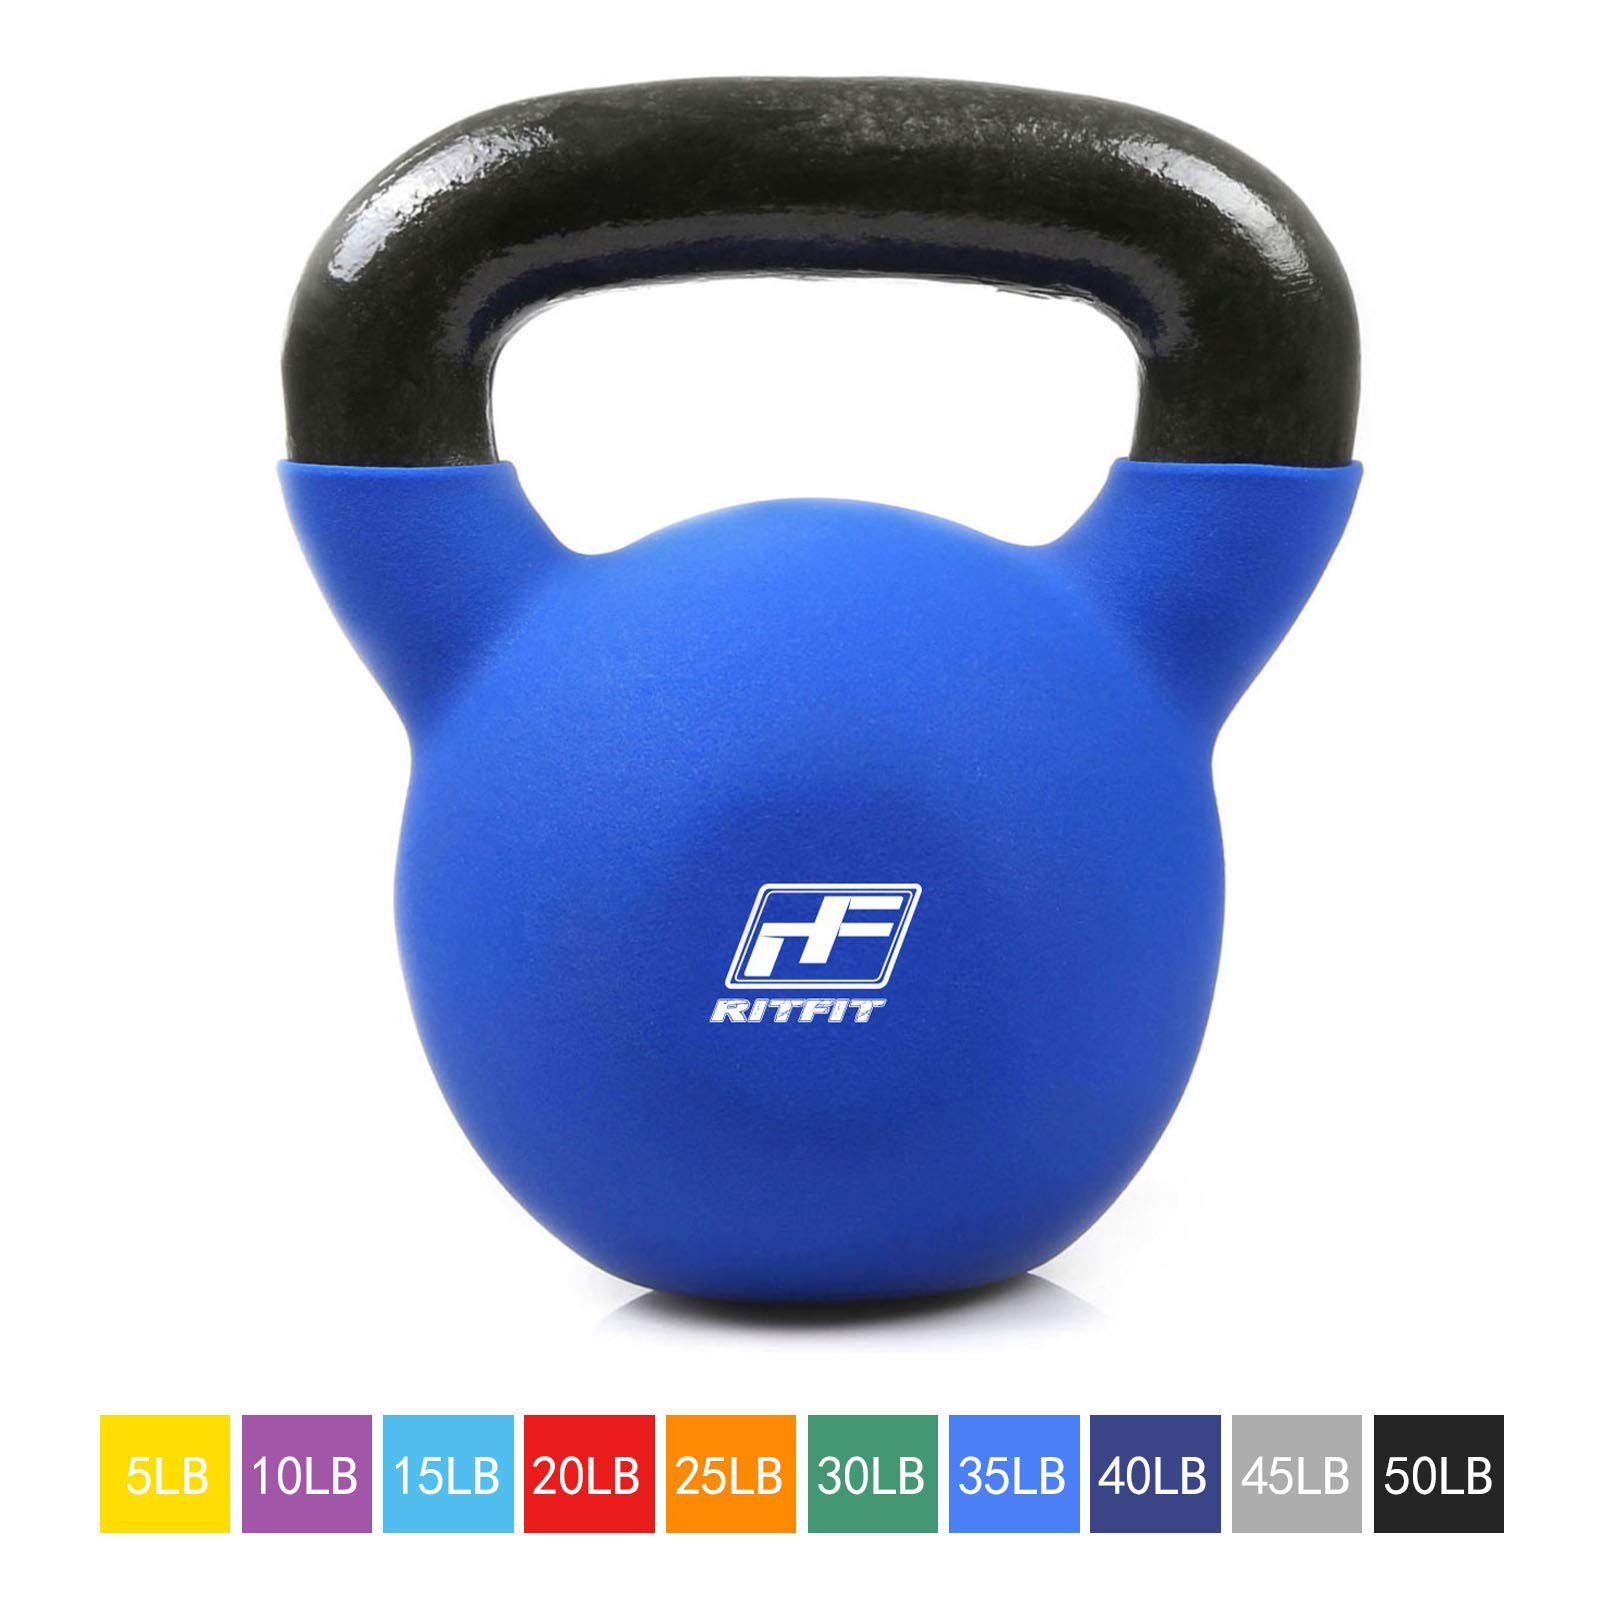 RitFit Neoprene Coated Solid Cast Iron Kettlebell - Great for Full Body Workout, Cross-Training, Weight Loss & Strength Training (5/10/15/20/25/30/35/40/45/50 LB) (35LB(Blue))